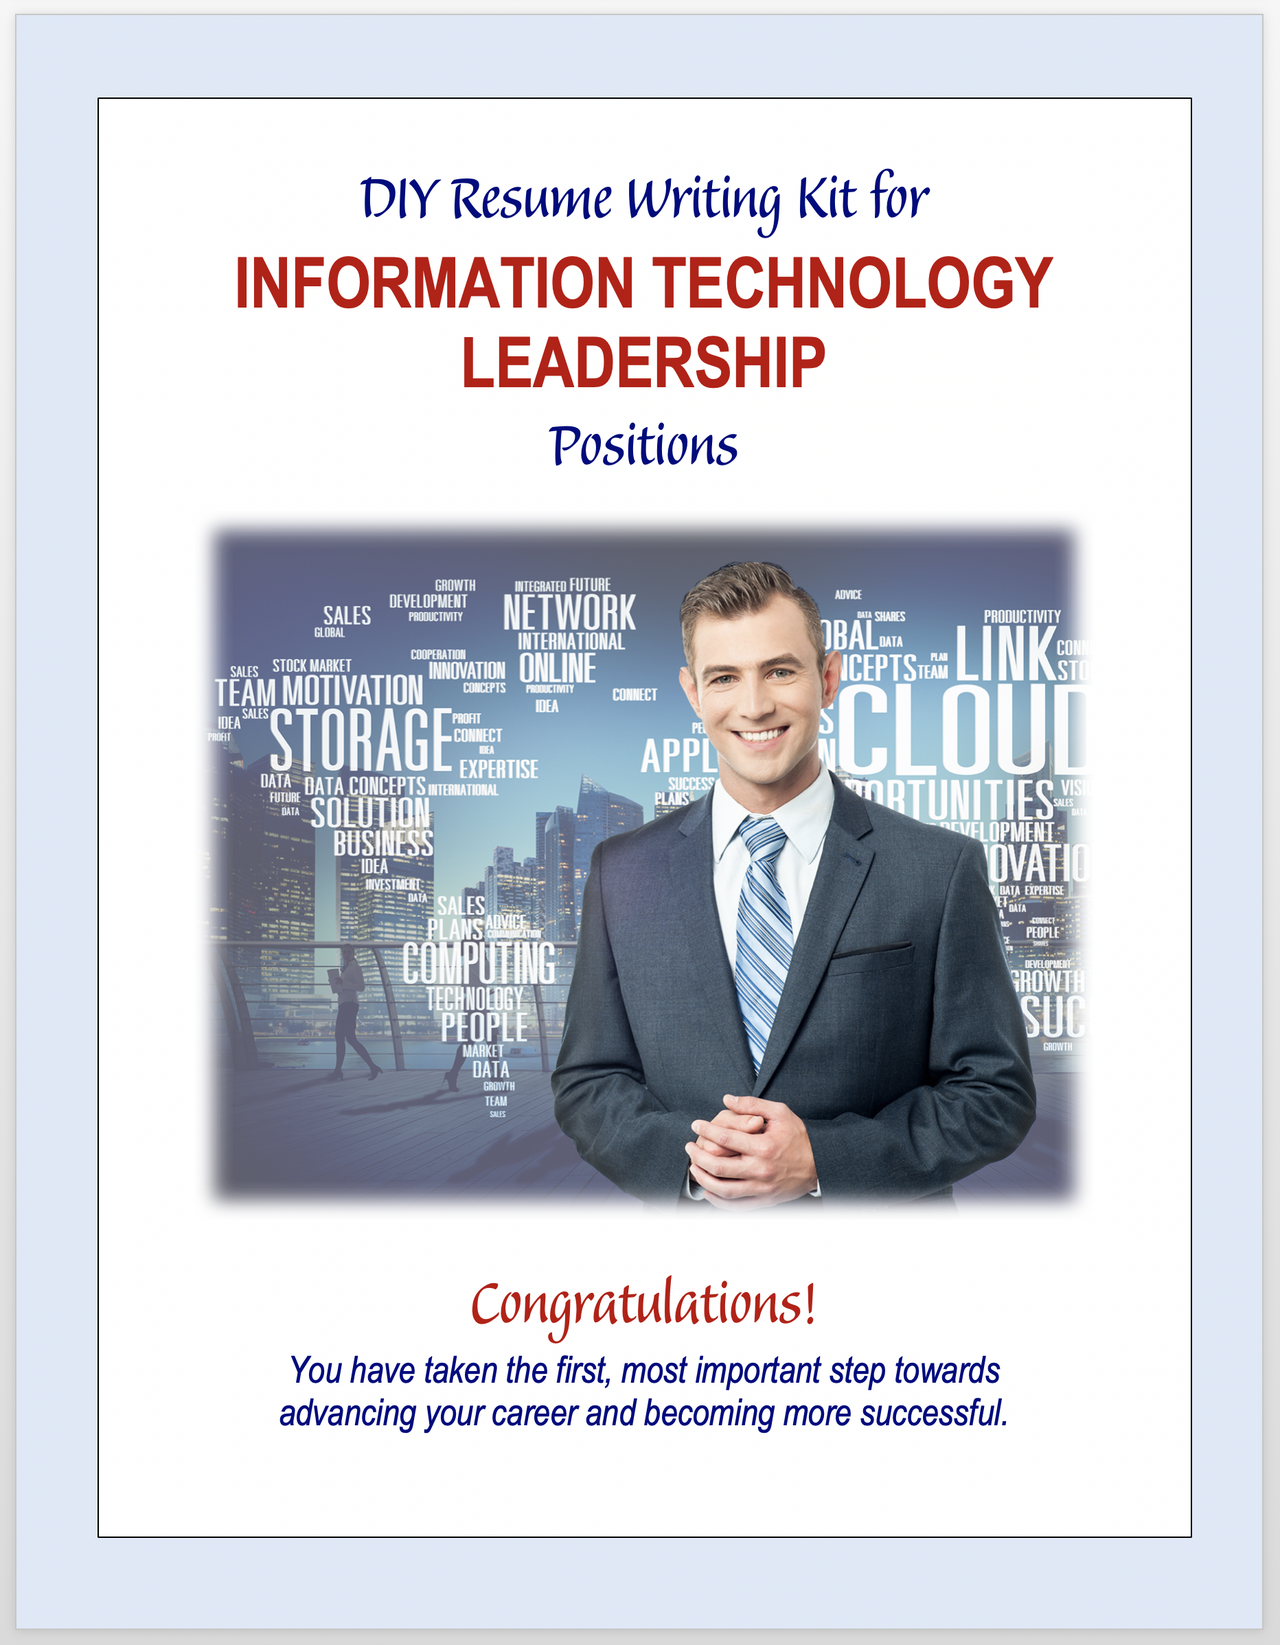 information technology leadership.png